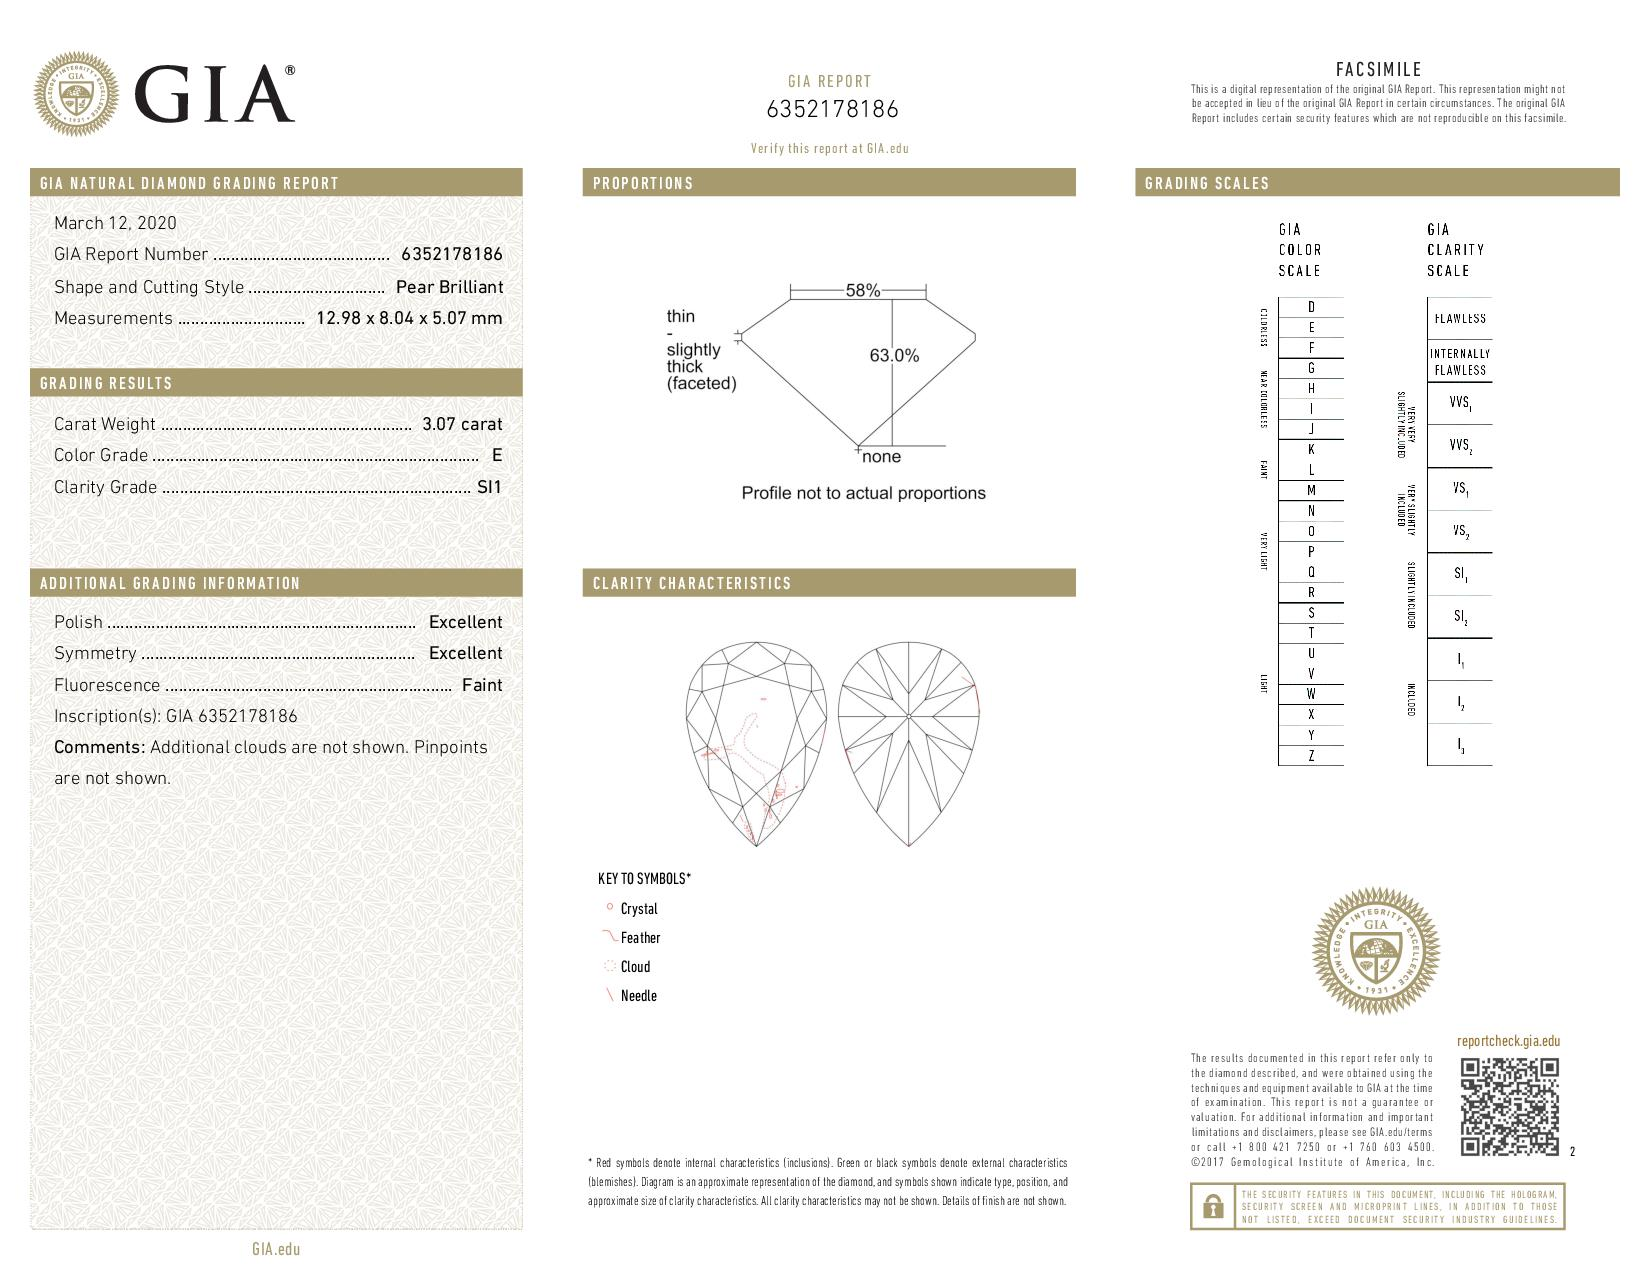 This is a 3.07 carat pear shape, E color, SI1 clarity natural diamond accompanied by a GIA grading report.